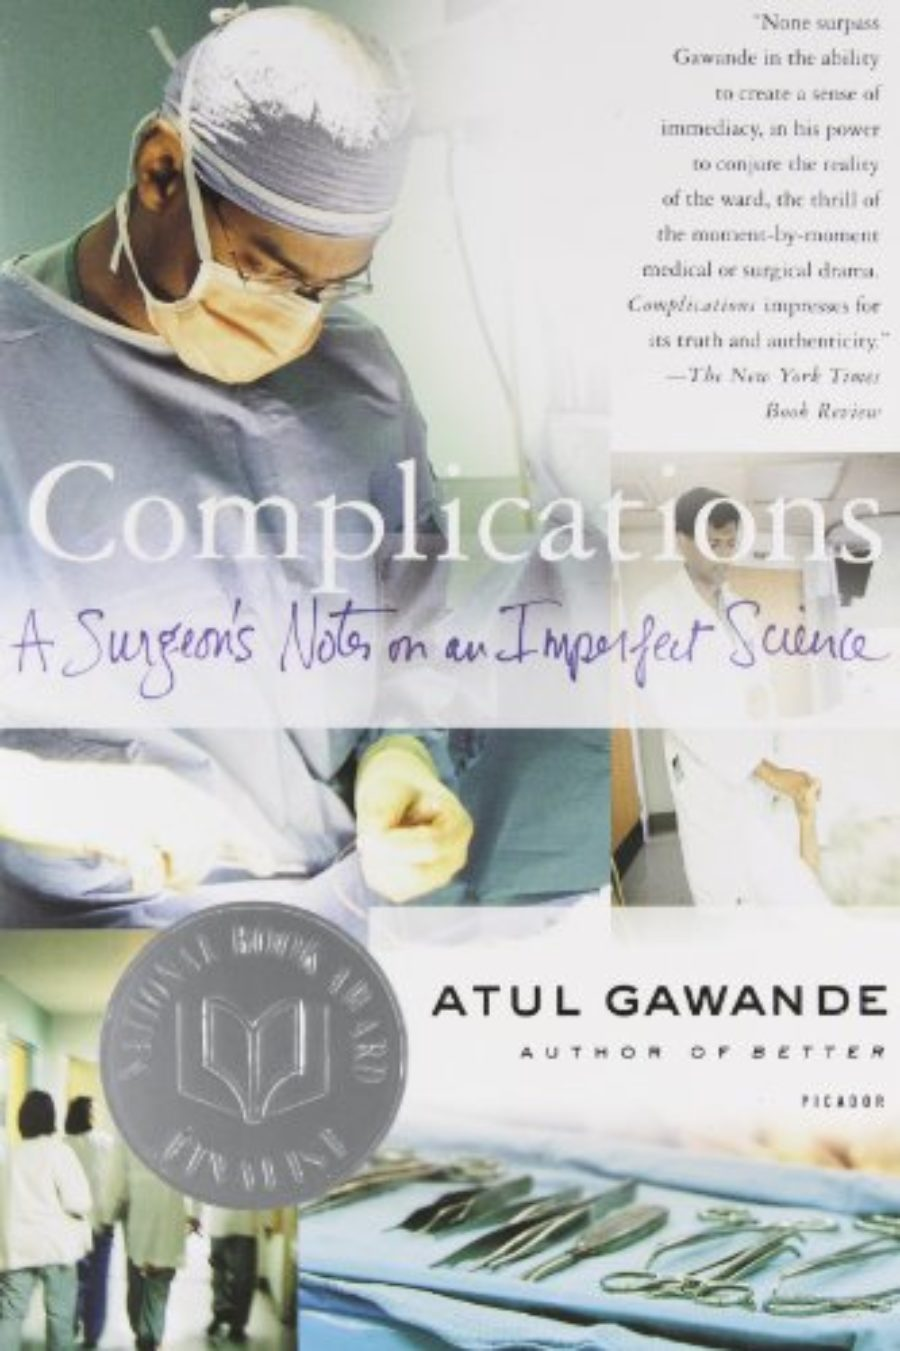 Cover of Complications: A Surgeon's Notes on an Imperfect Science